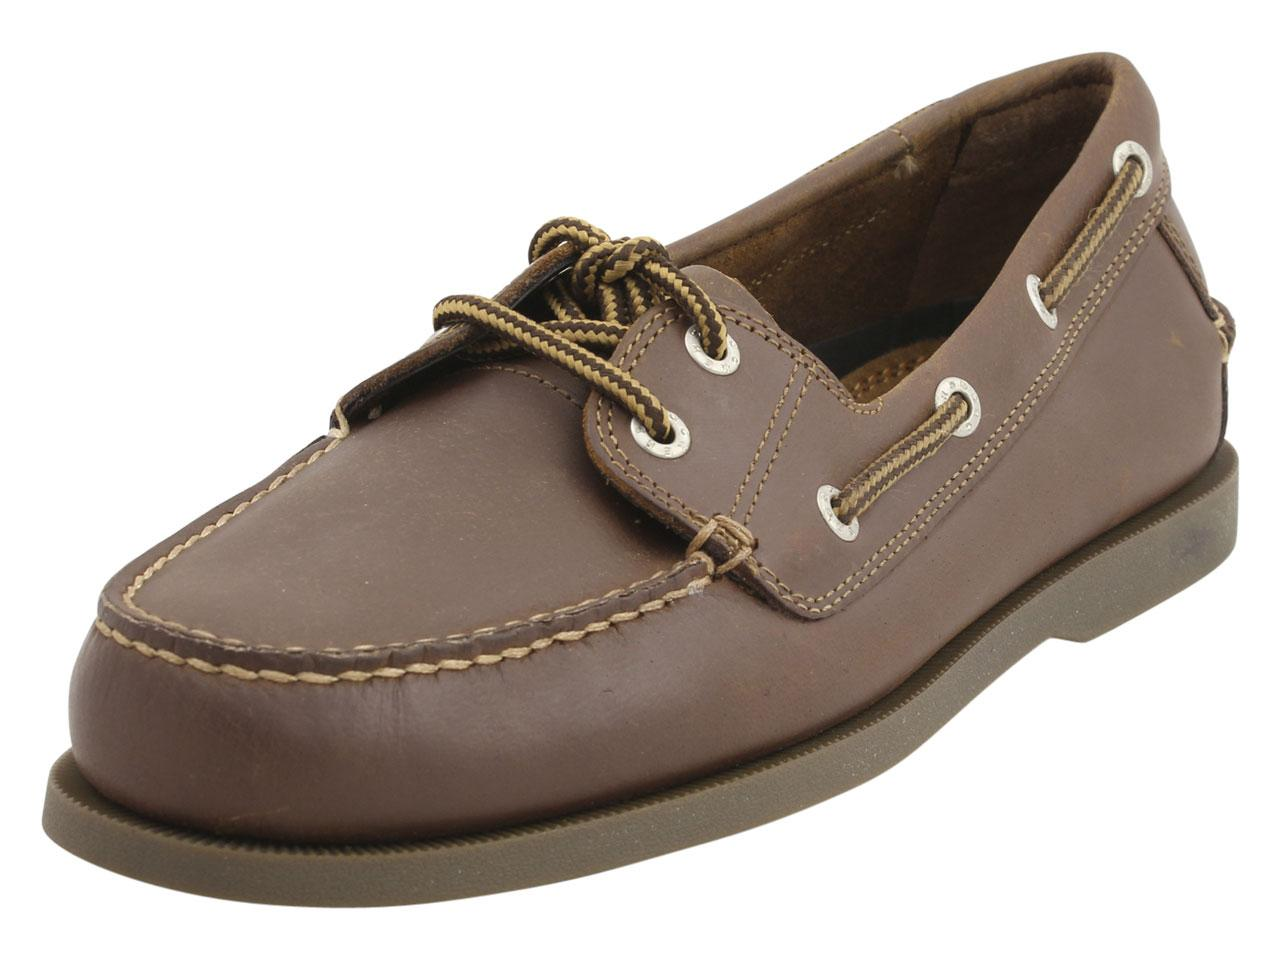 Image of Dockers Men's Vargas Loafers Boat Shoes - Brown - 9.5 D(M) US